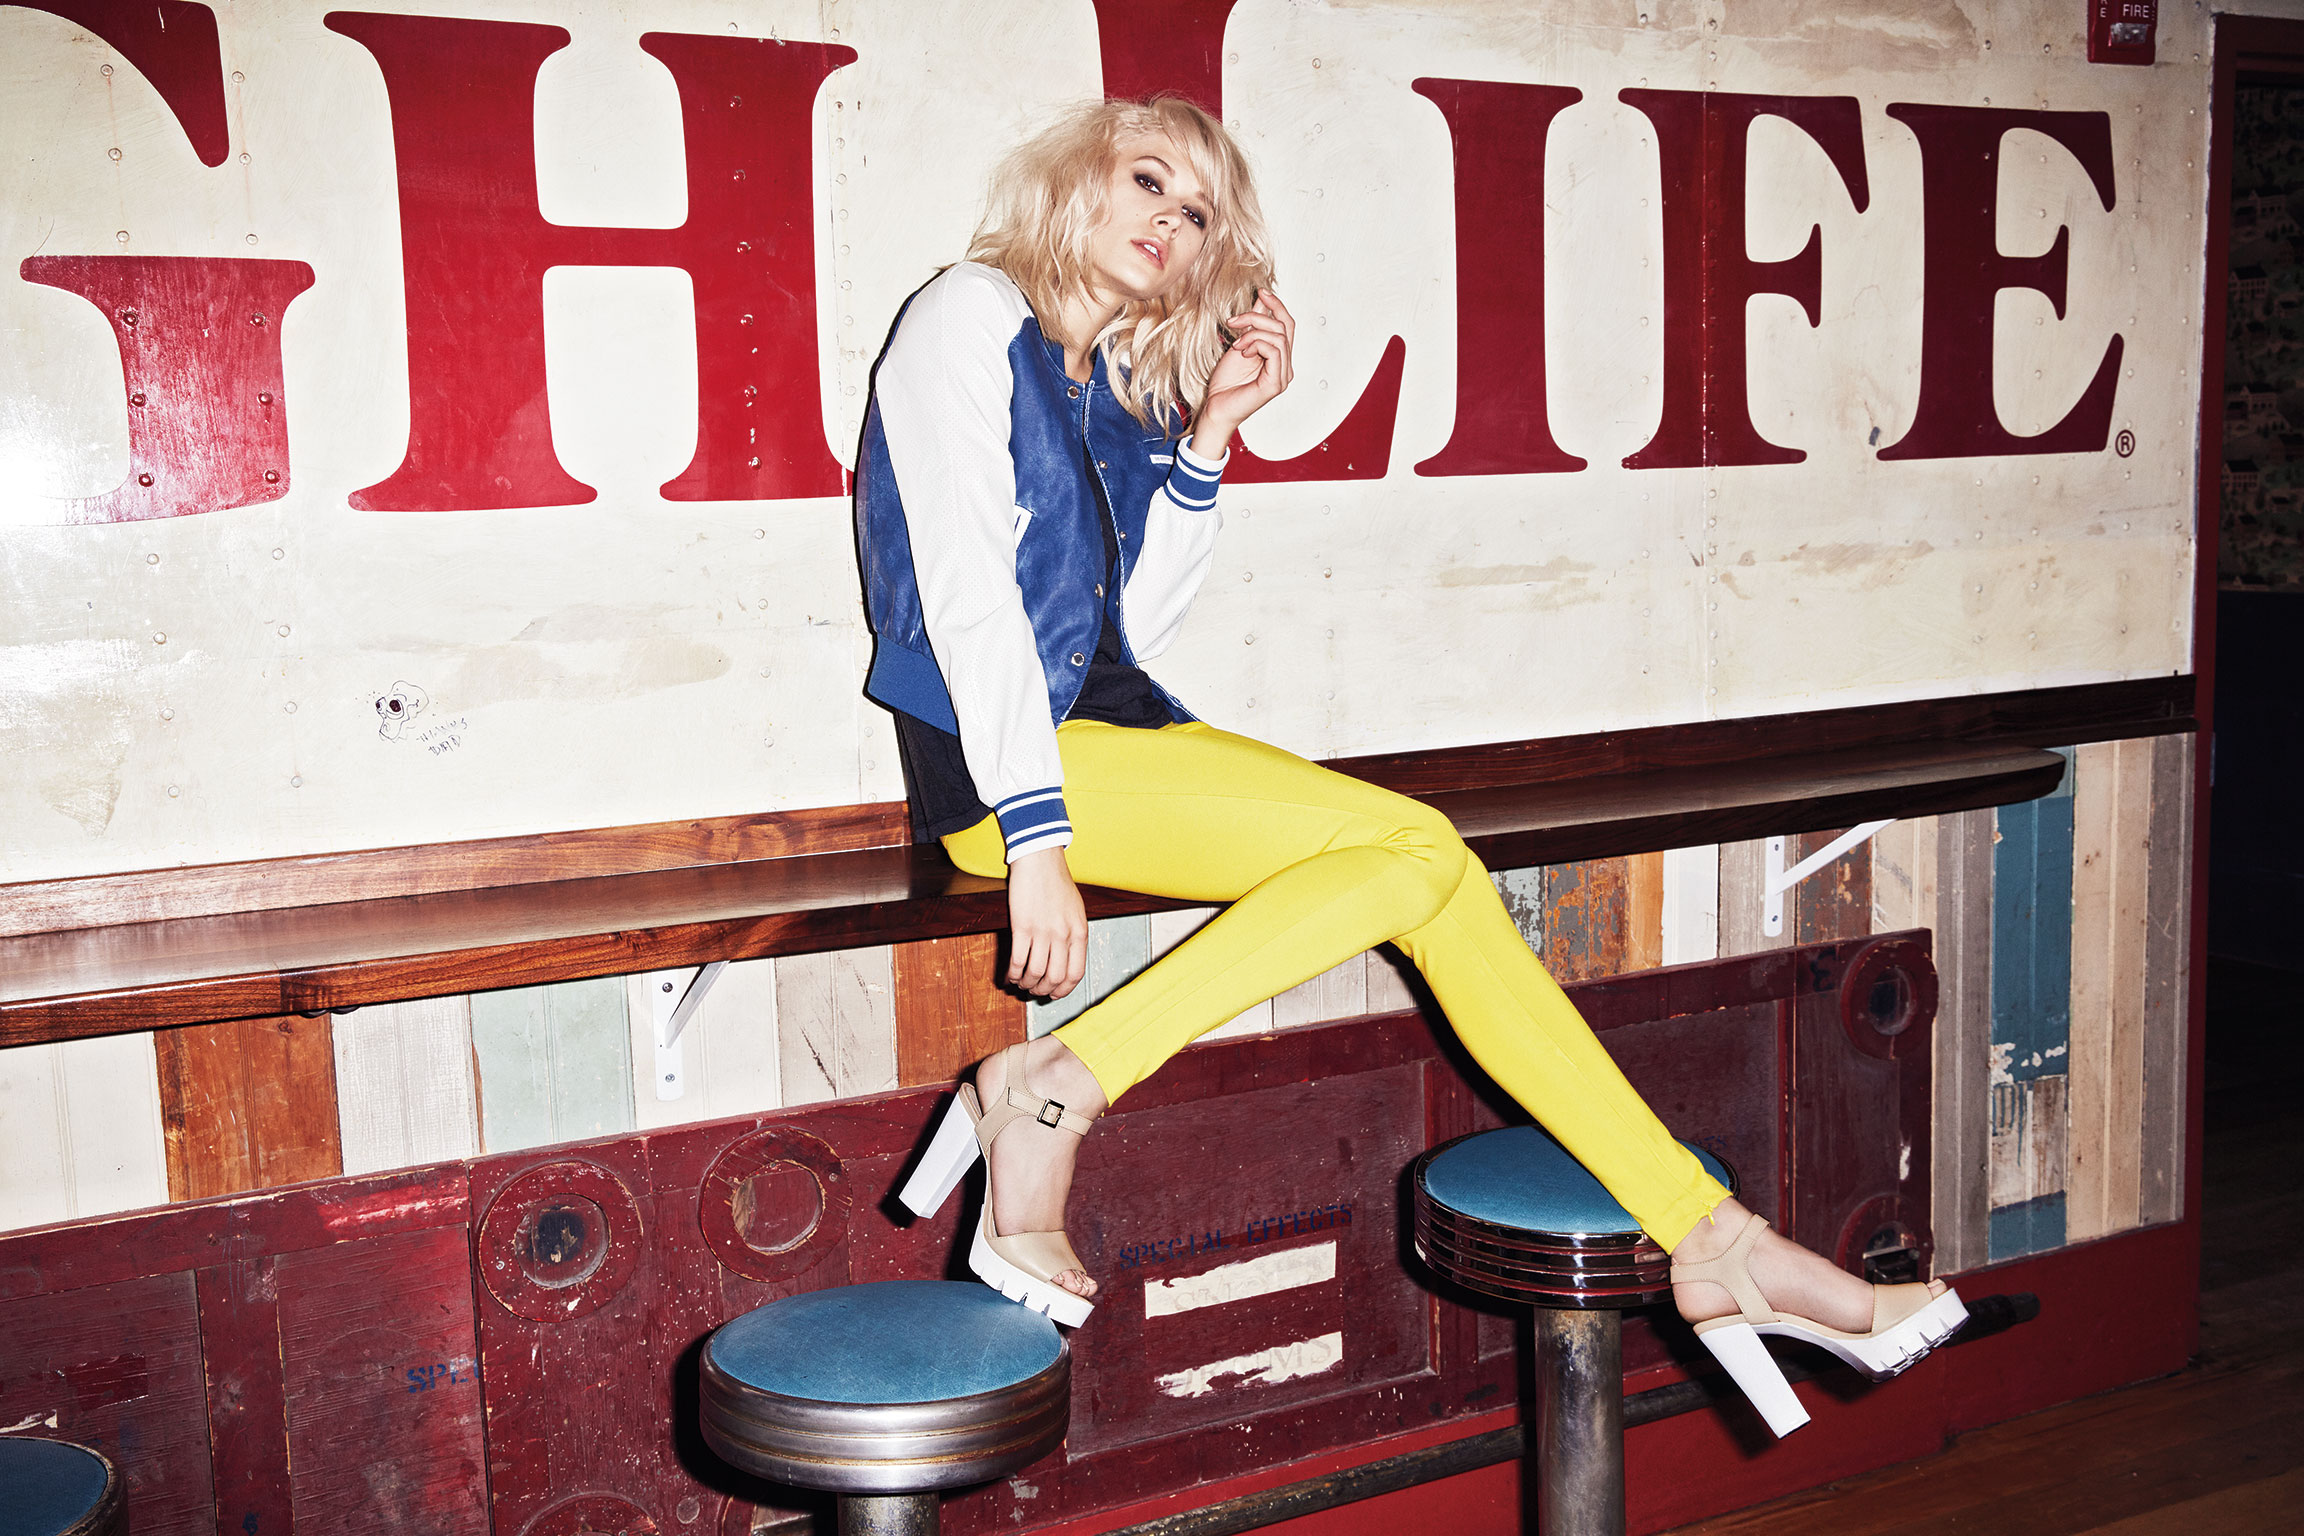 STEVE-MADDEN-SS15-CAMPAIGN-STYLED-BY-ANDREA-MESSIER-CUOMO-14.jpg